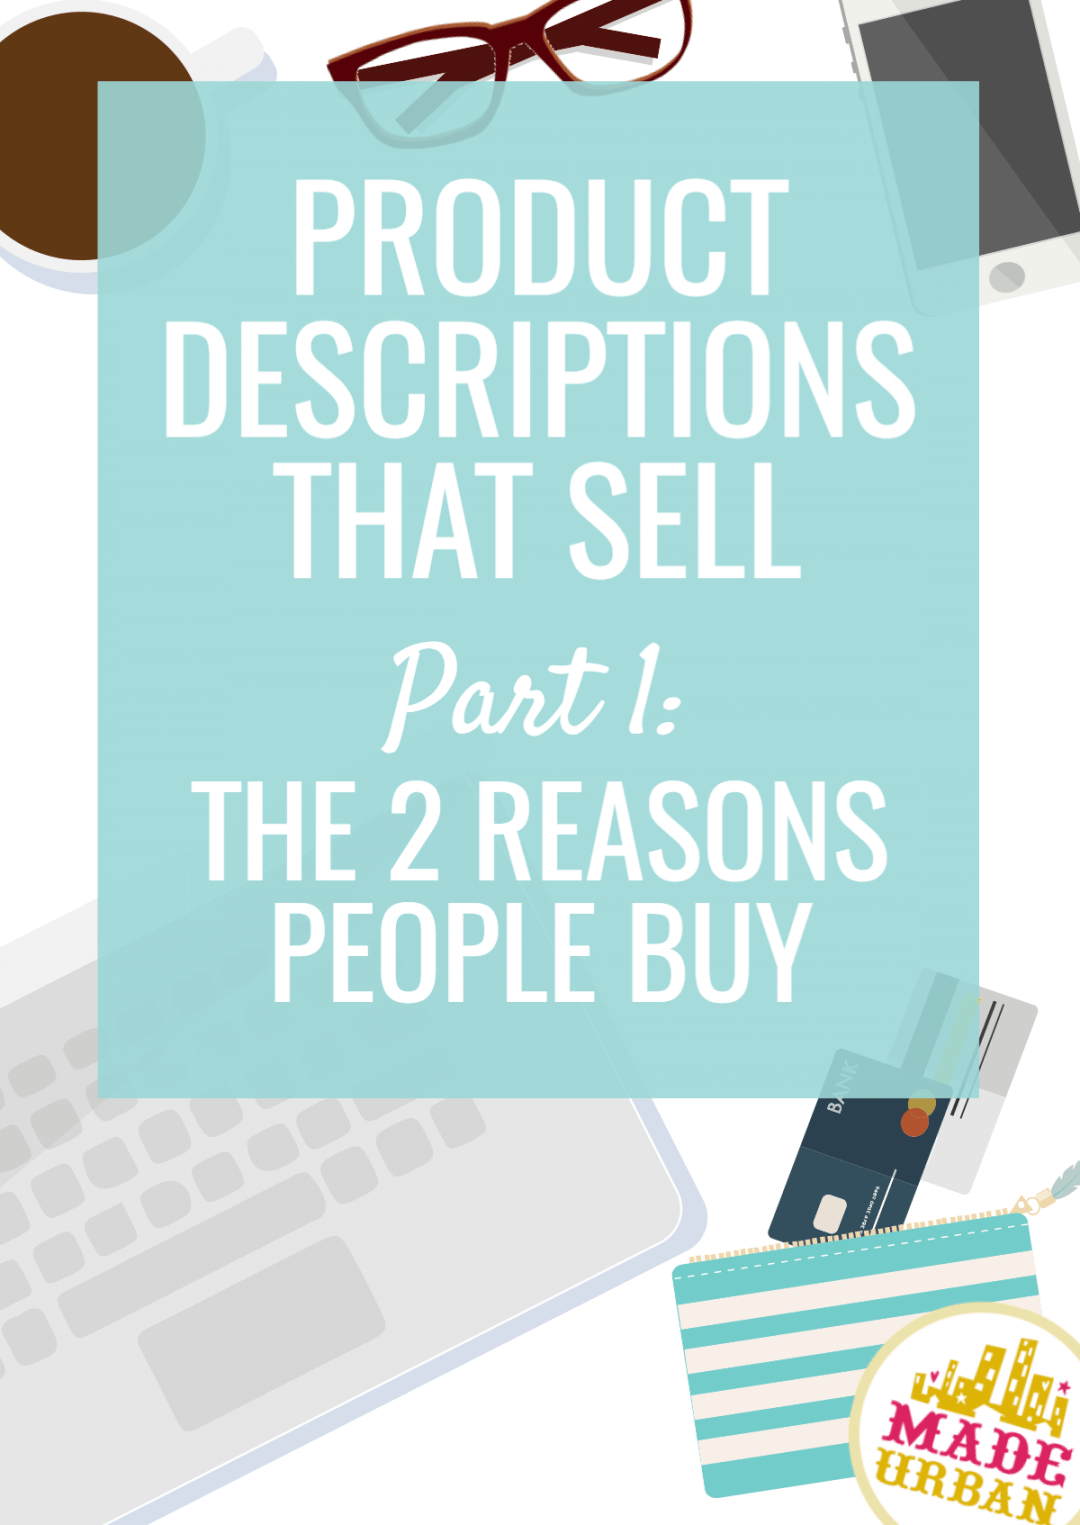 Product Descriptions that Sell: The 2 Reasons People Buy